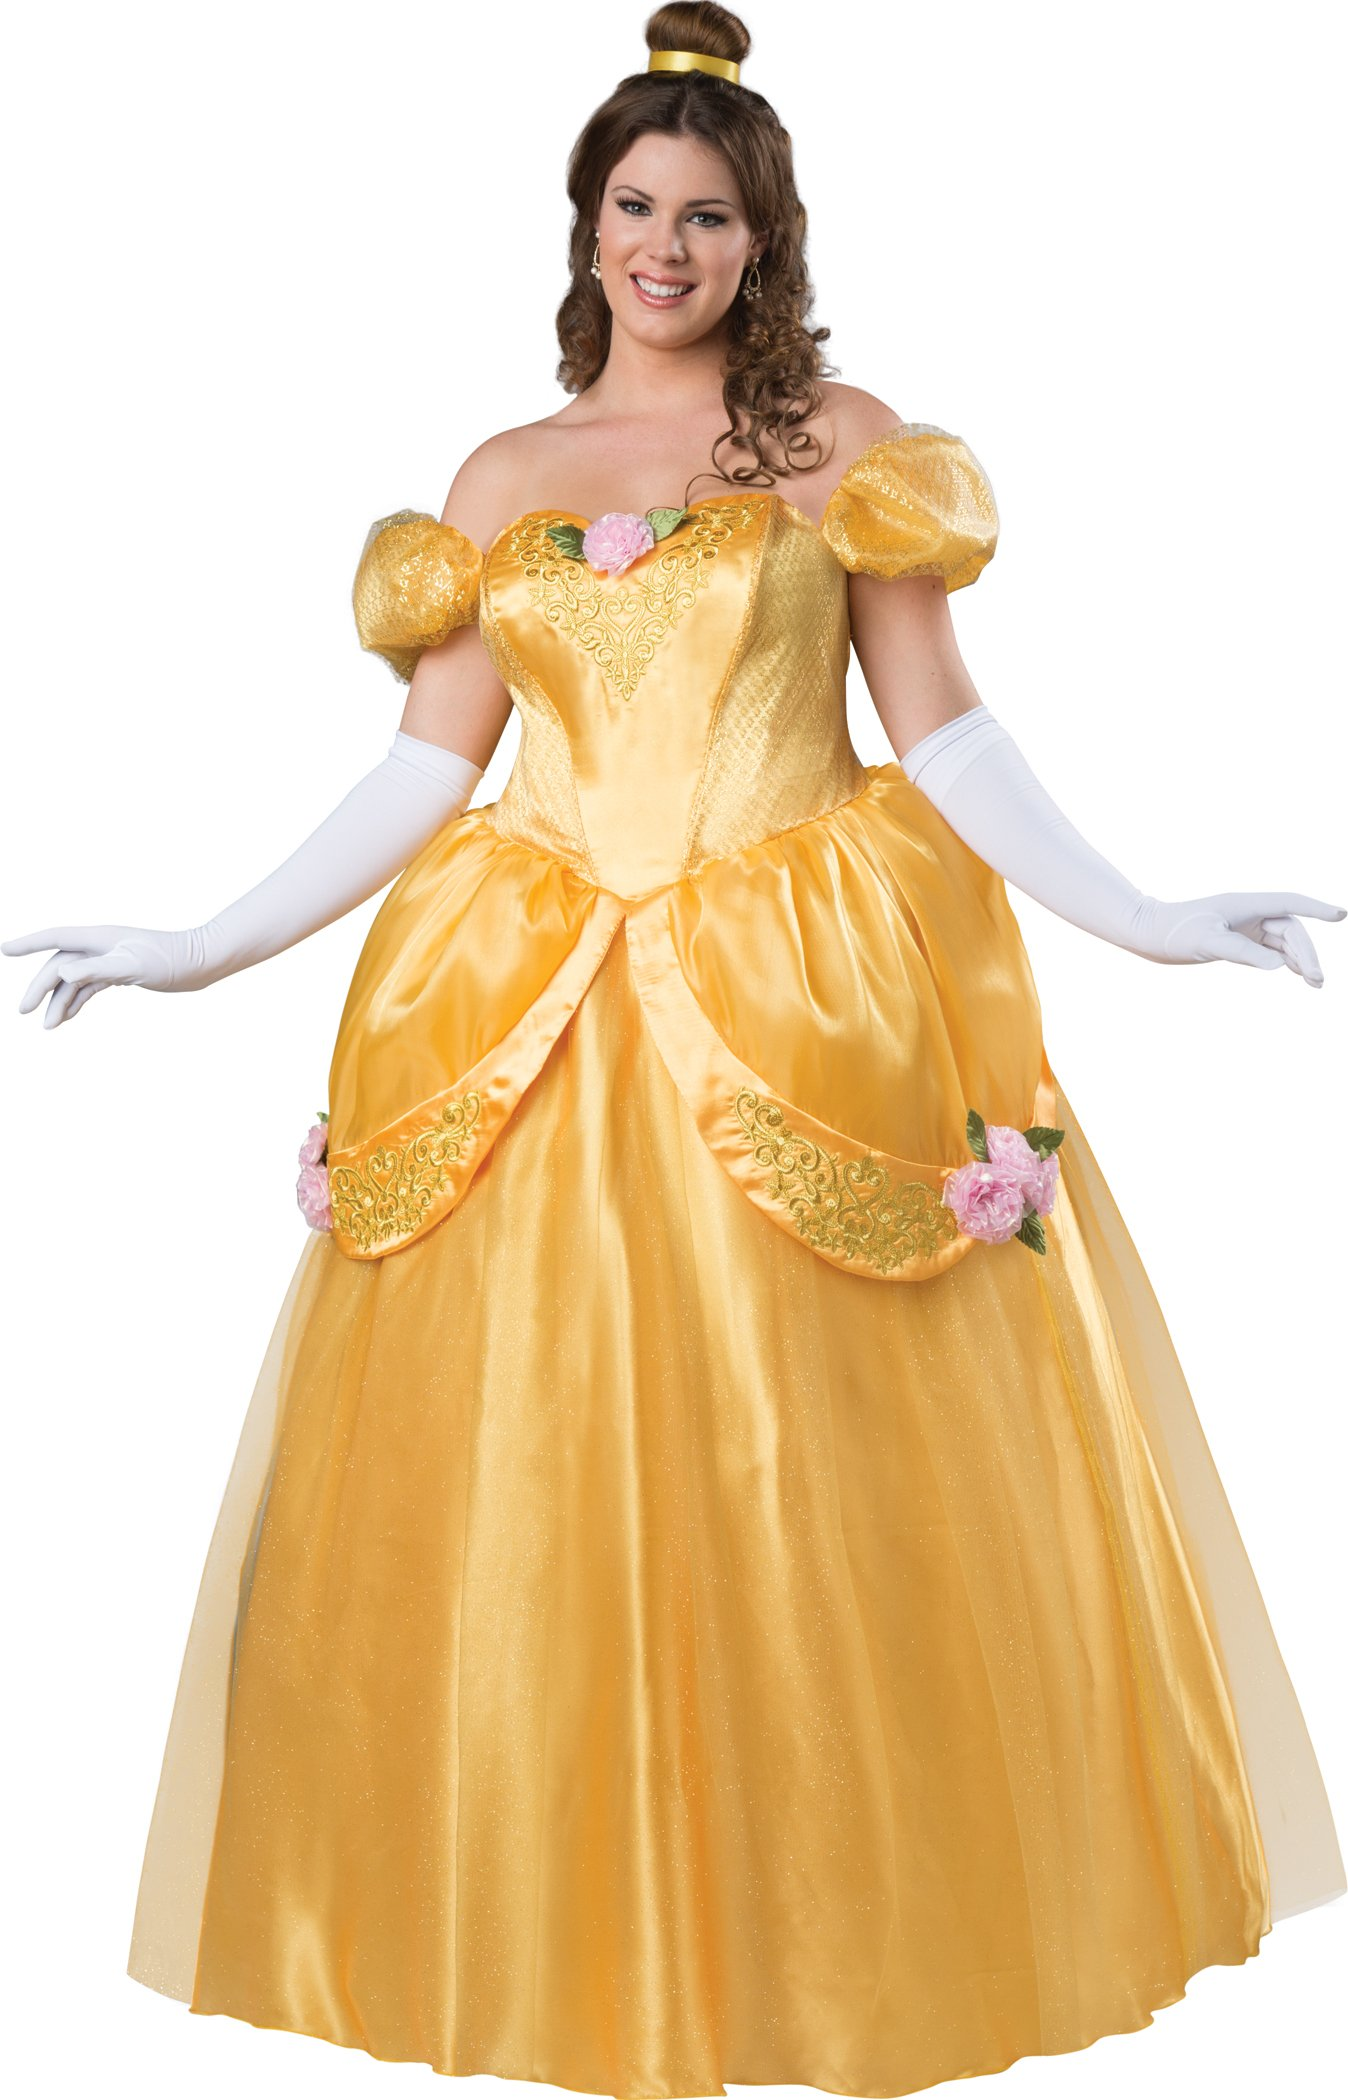 princess belle plus size costume halloween ideas for women. Black Bedroom Furniture Sets. Home Design Ideas